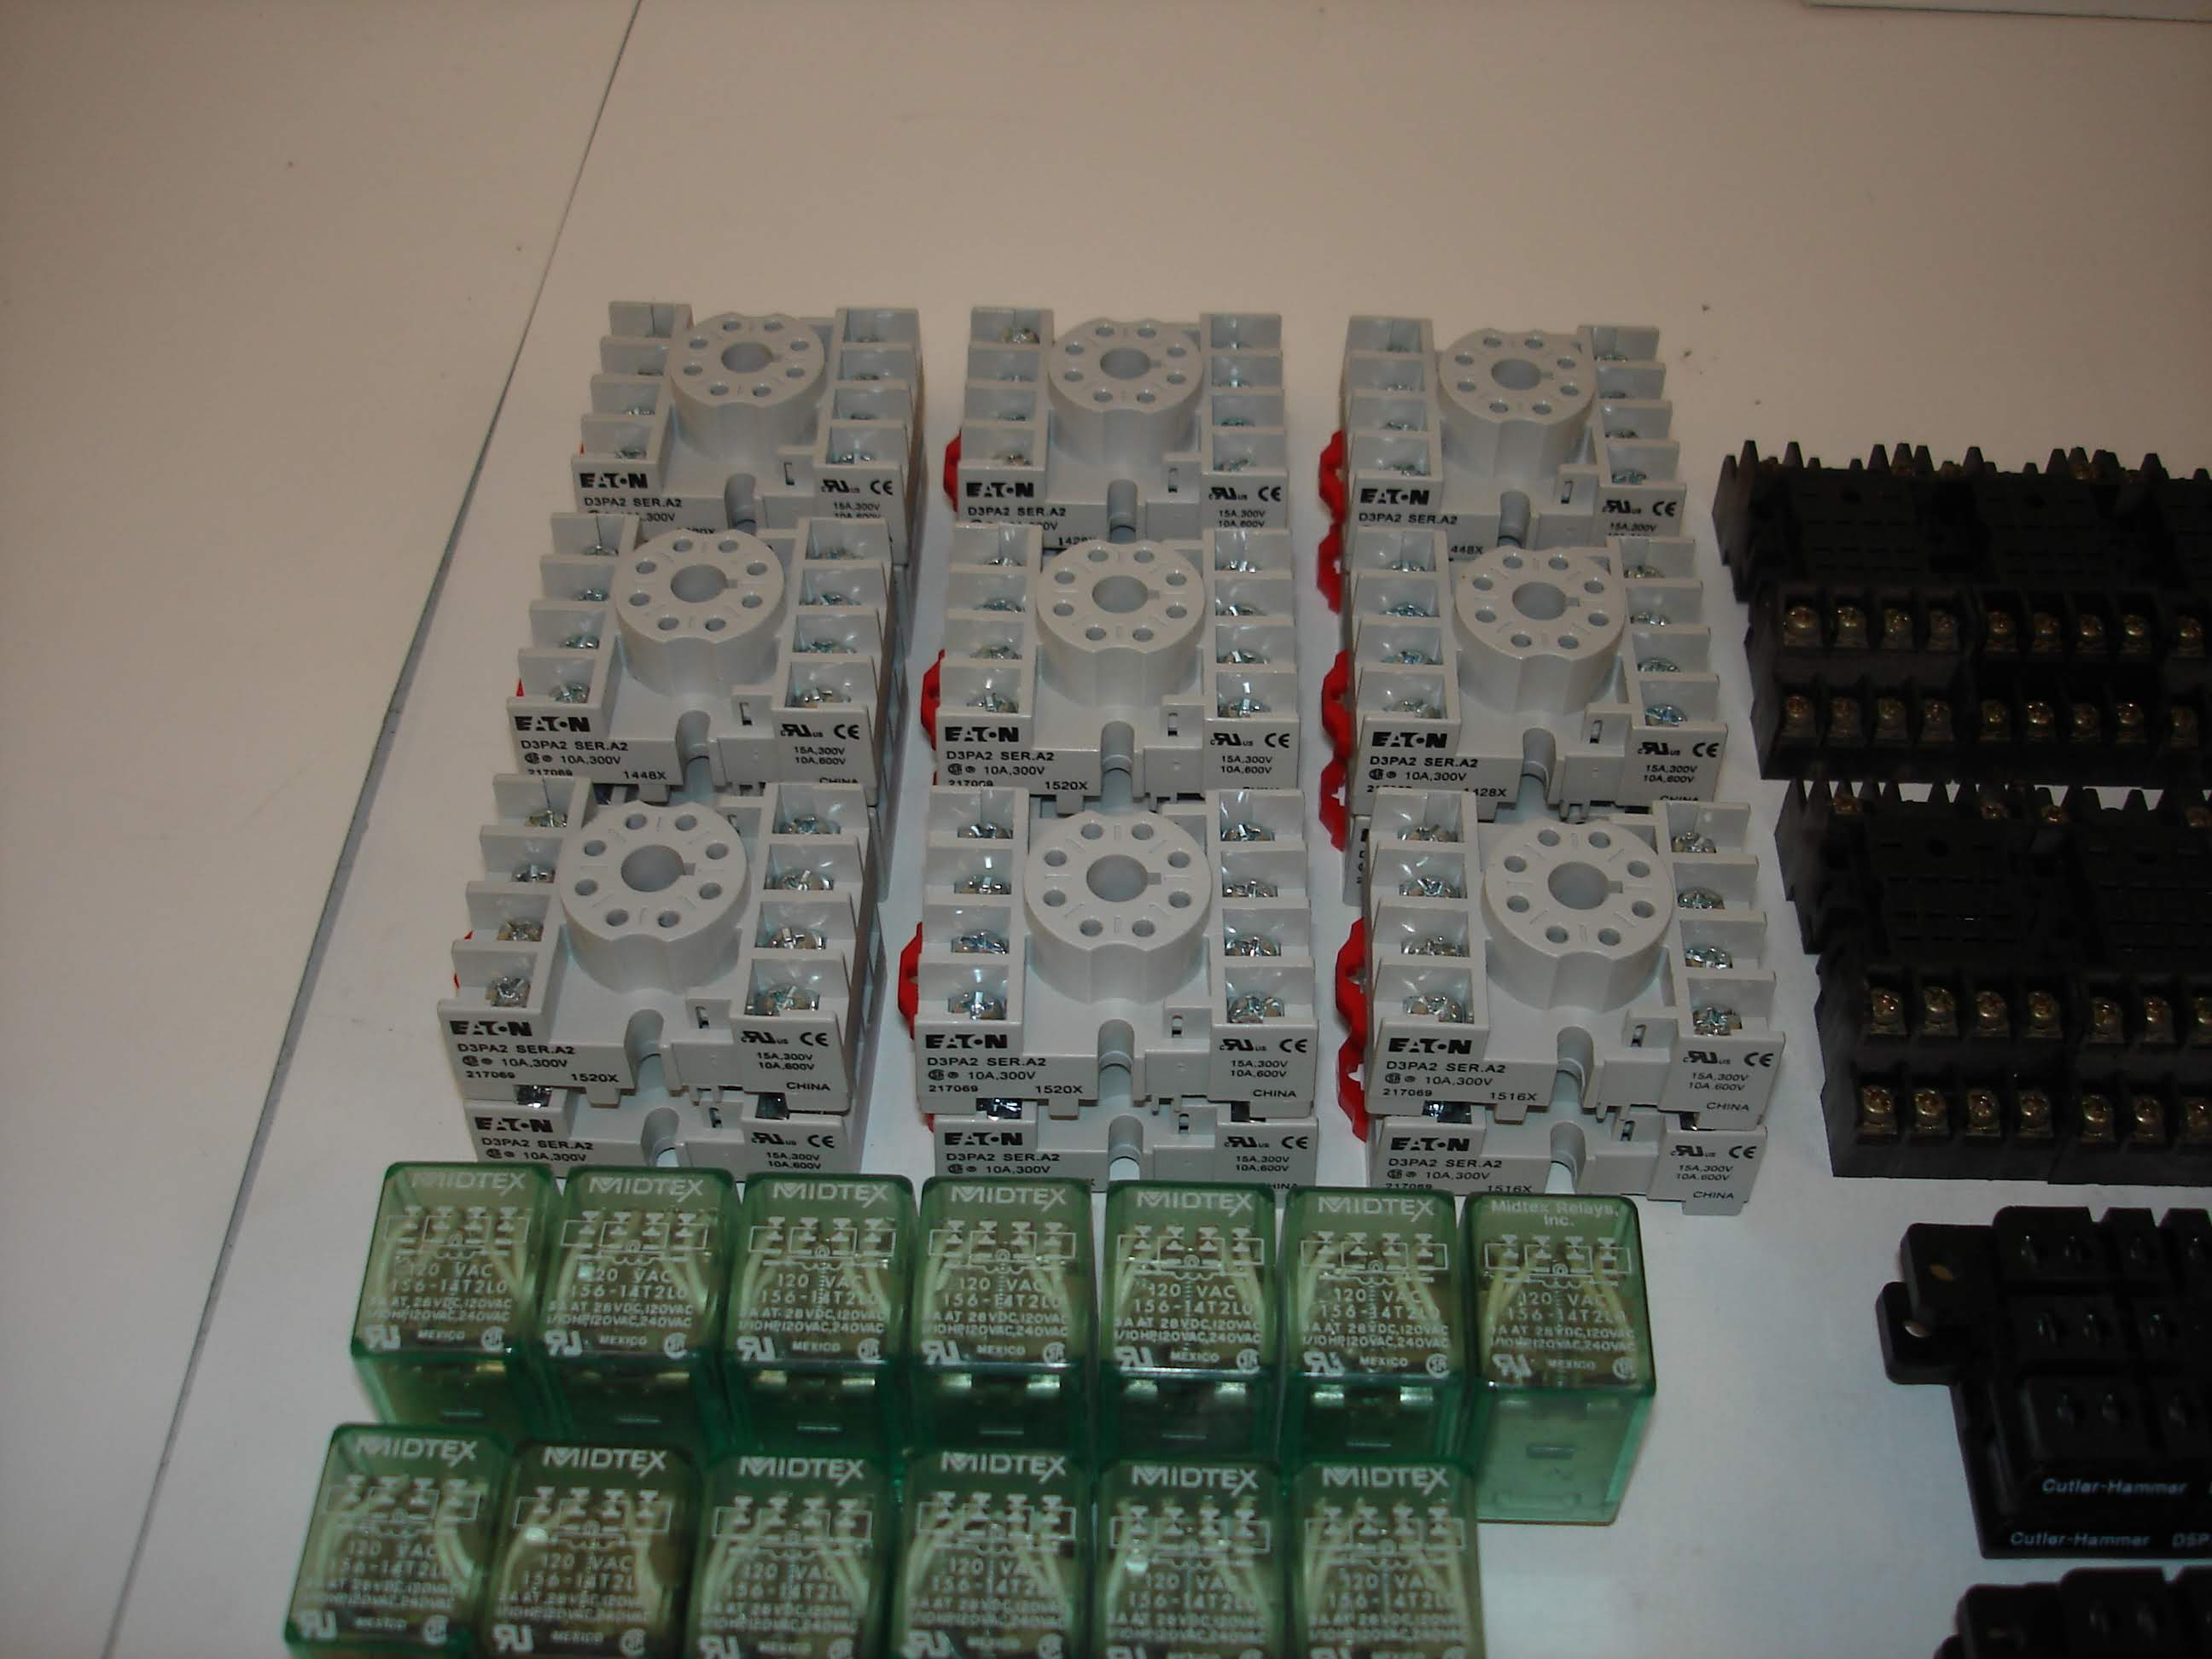 Lot 25 - (50+) MISC BRANDED RELAYS AND SOCKETS: EATON D3PA2 AND ALL OTHER ITEMS INCLUDED IN PHOTOS!